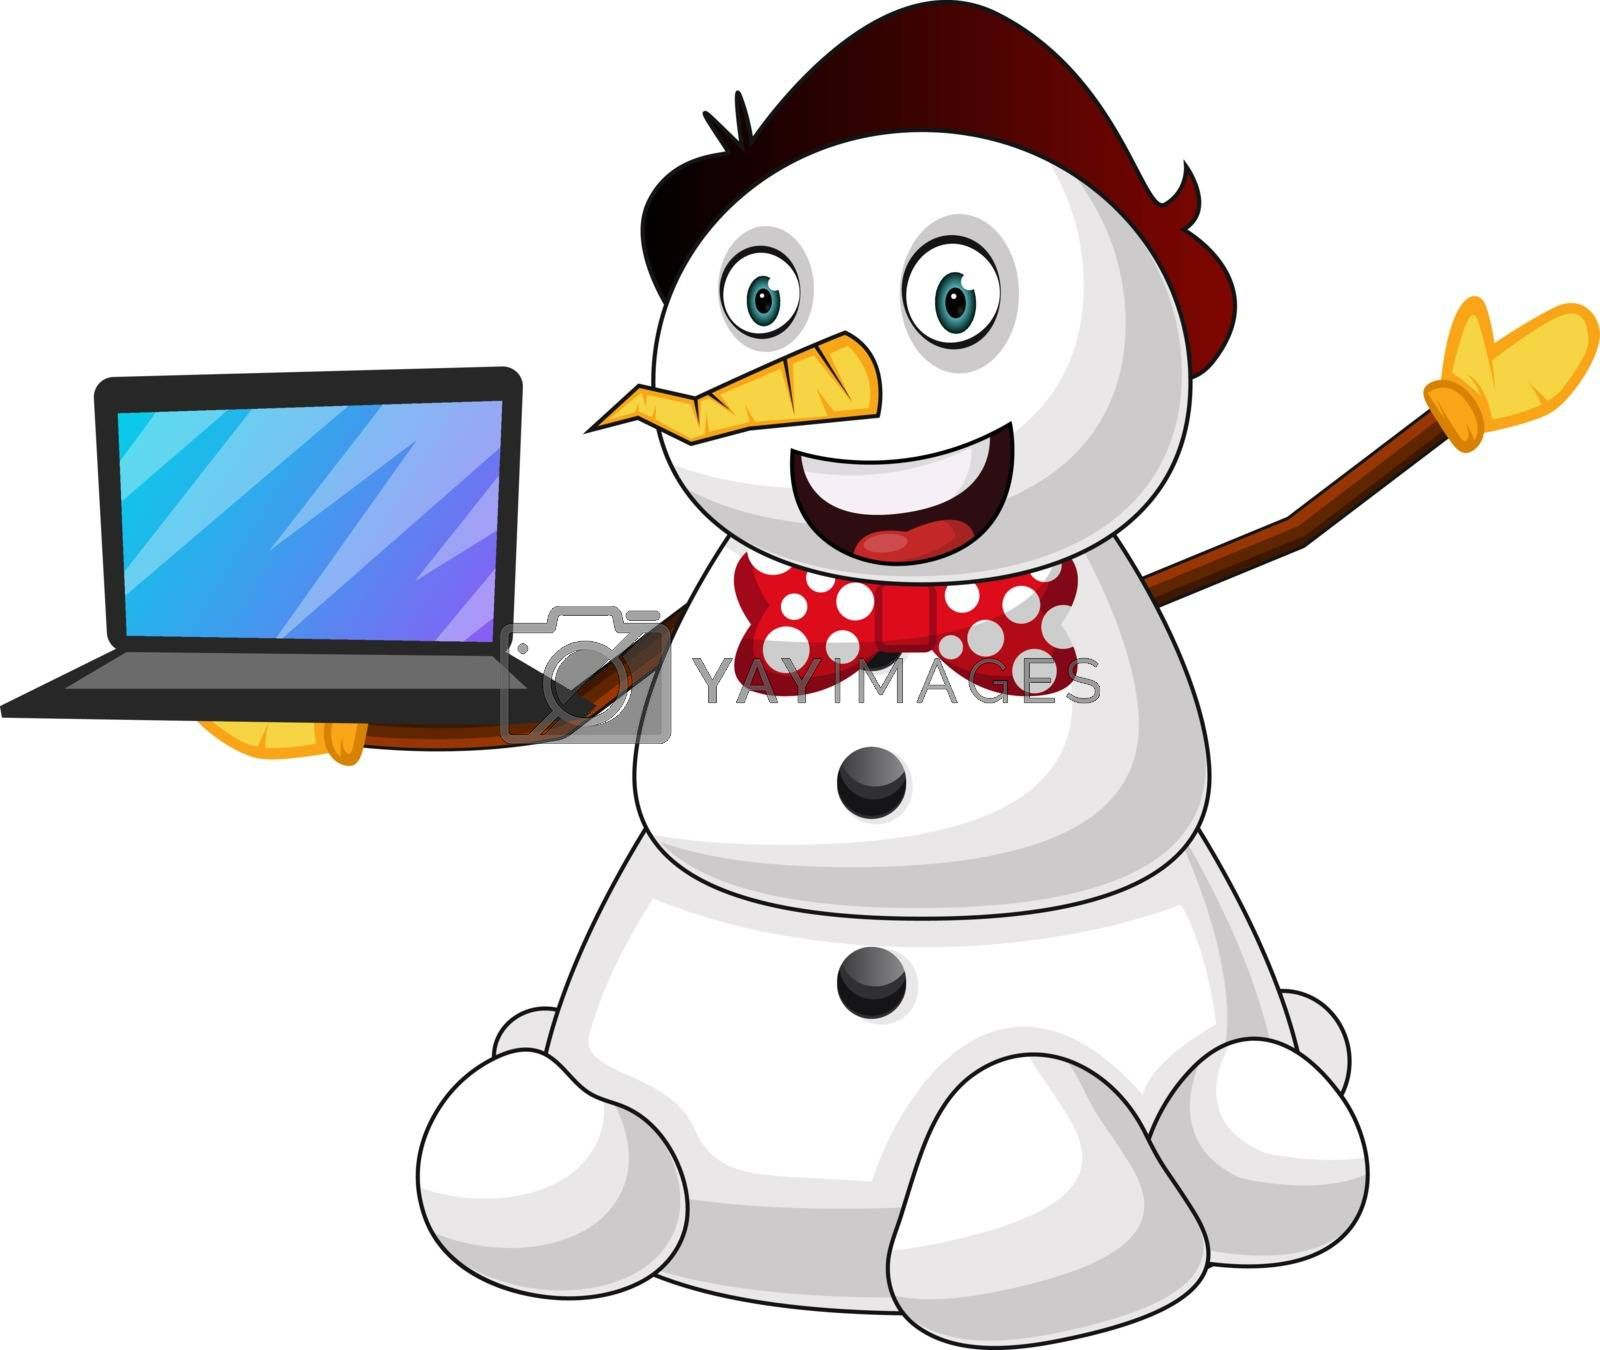 Royalty free image of Snowman with laptop illustration vector on white background by Morphart